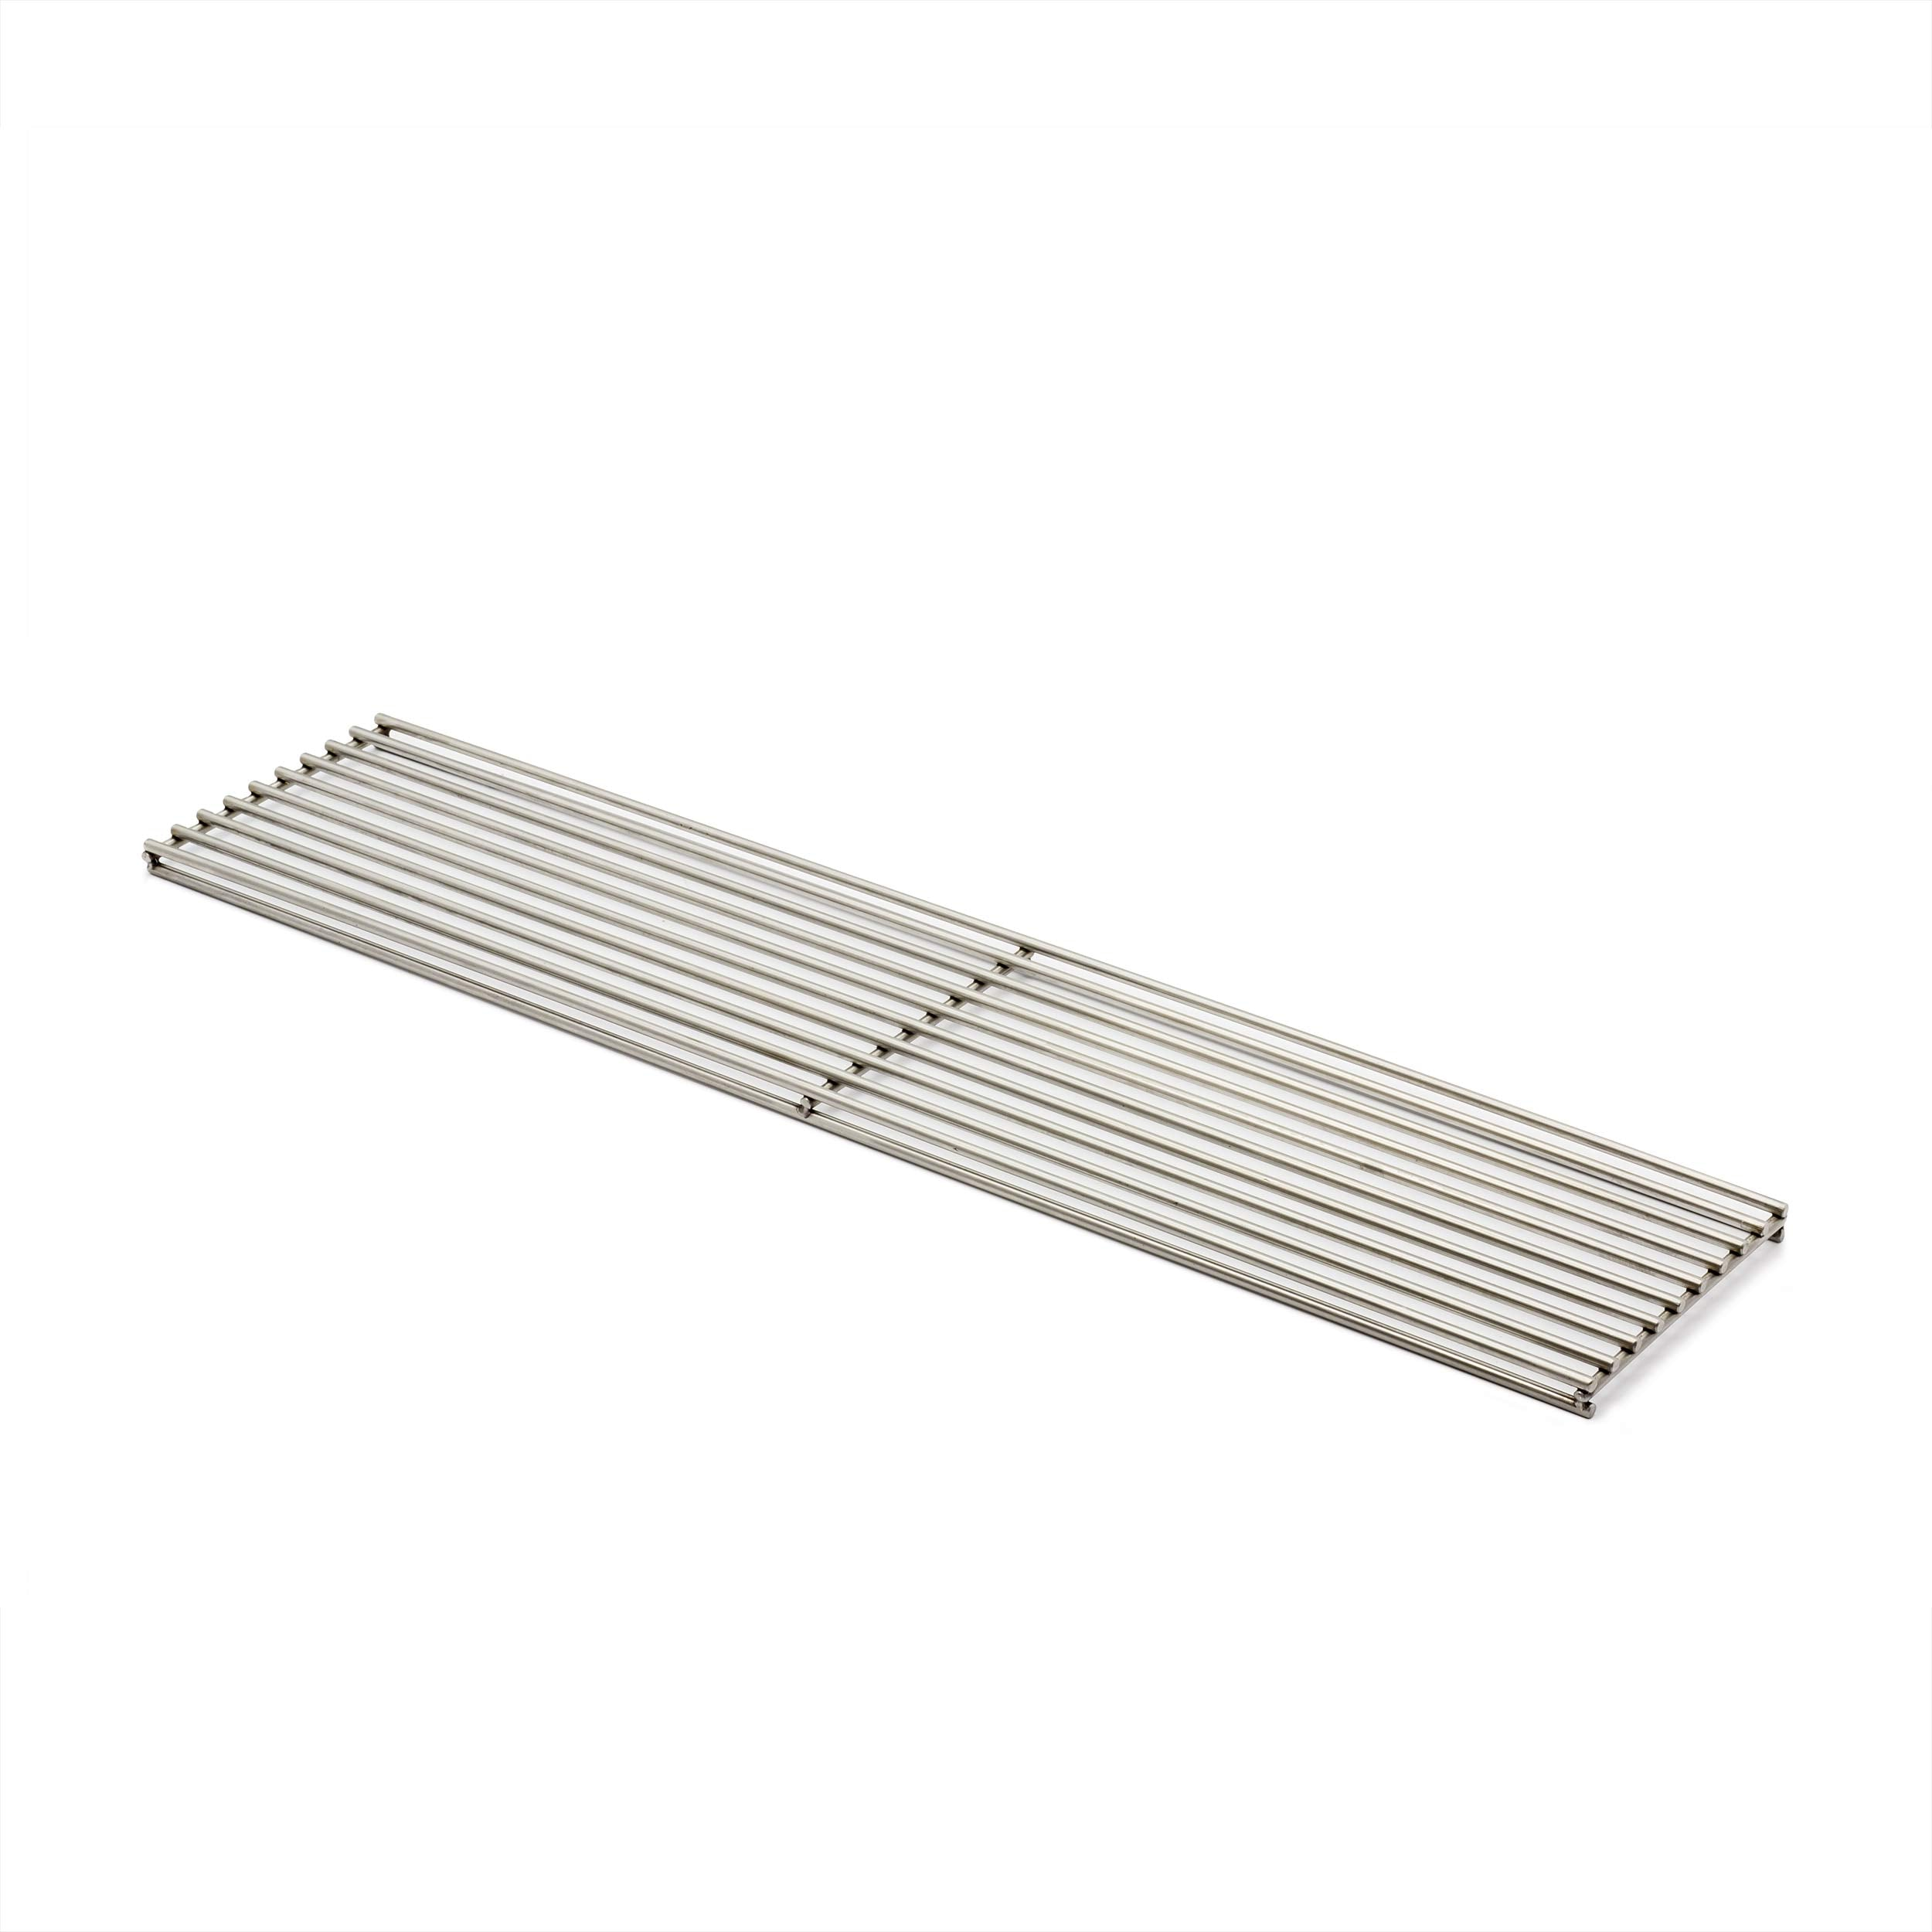 "Summerset Sizzler 26"" Warming Rack (5 1/4"" x 23 1/2"") - BBQ Fix"